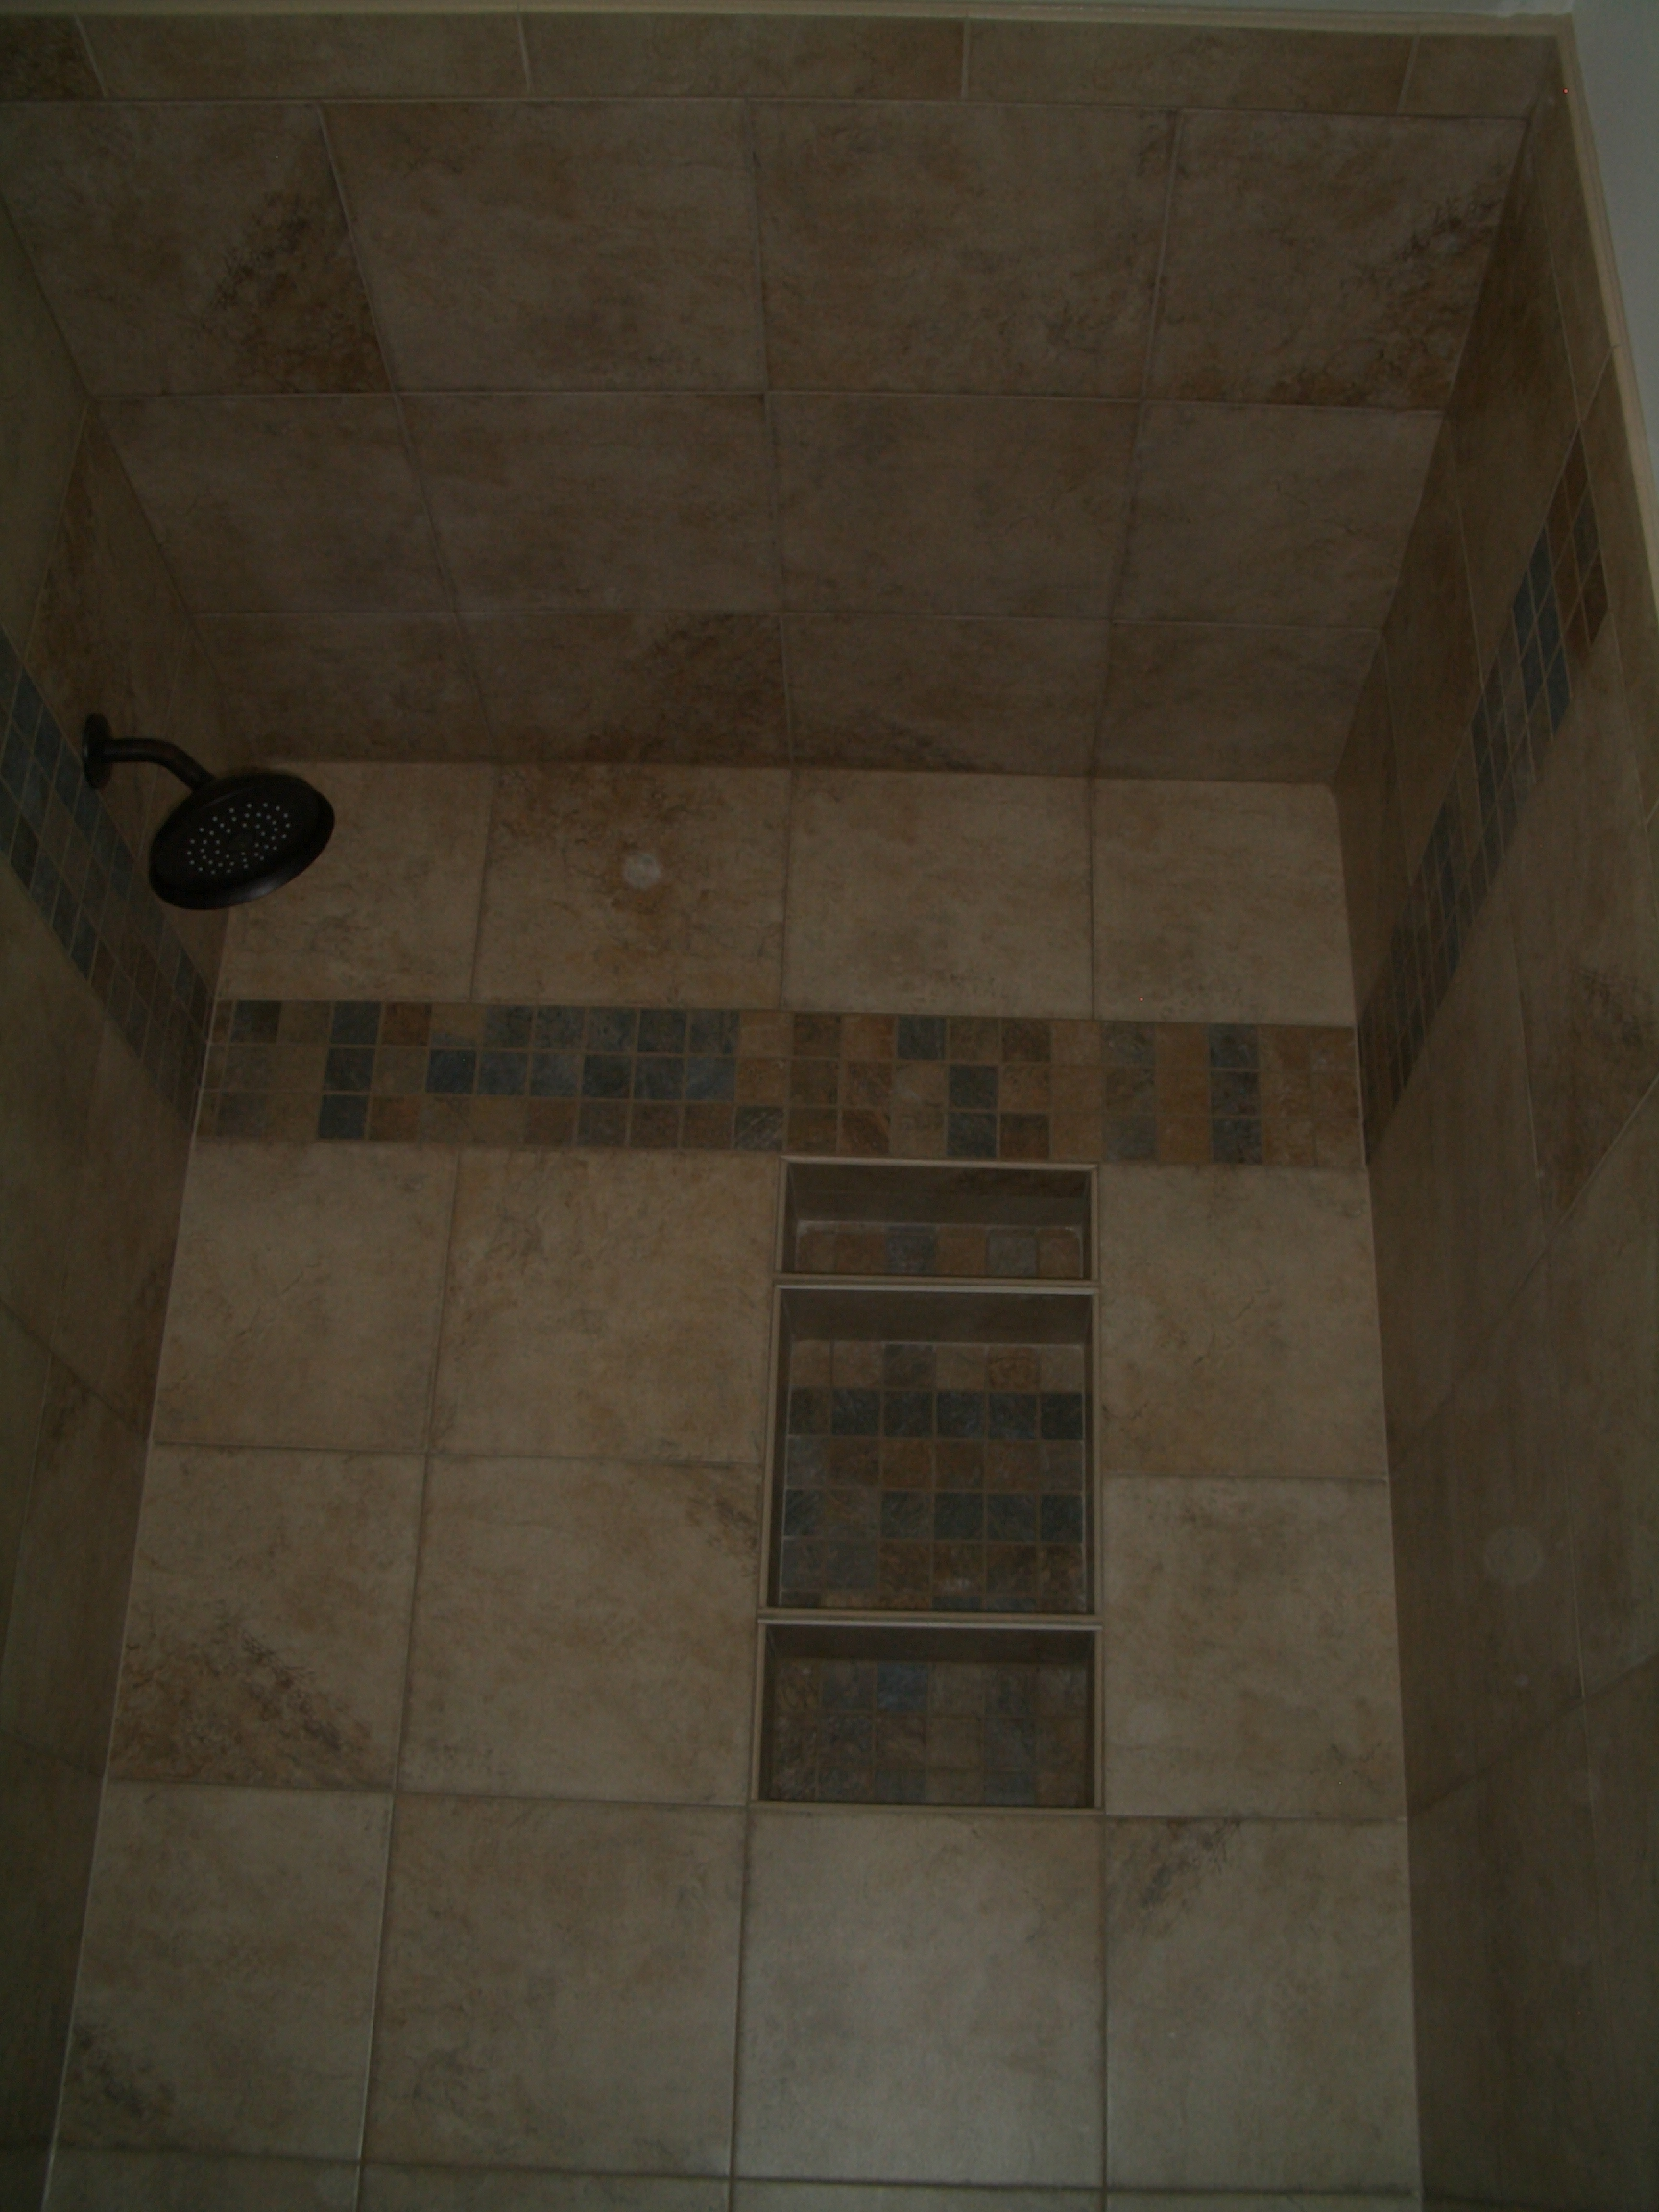 How to install tile on a shower ceiling finished tiled shower ceiling dailygadgetfo Choice Image